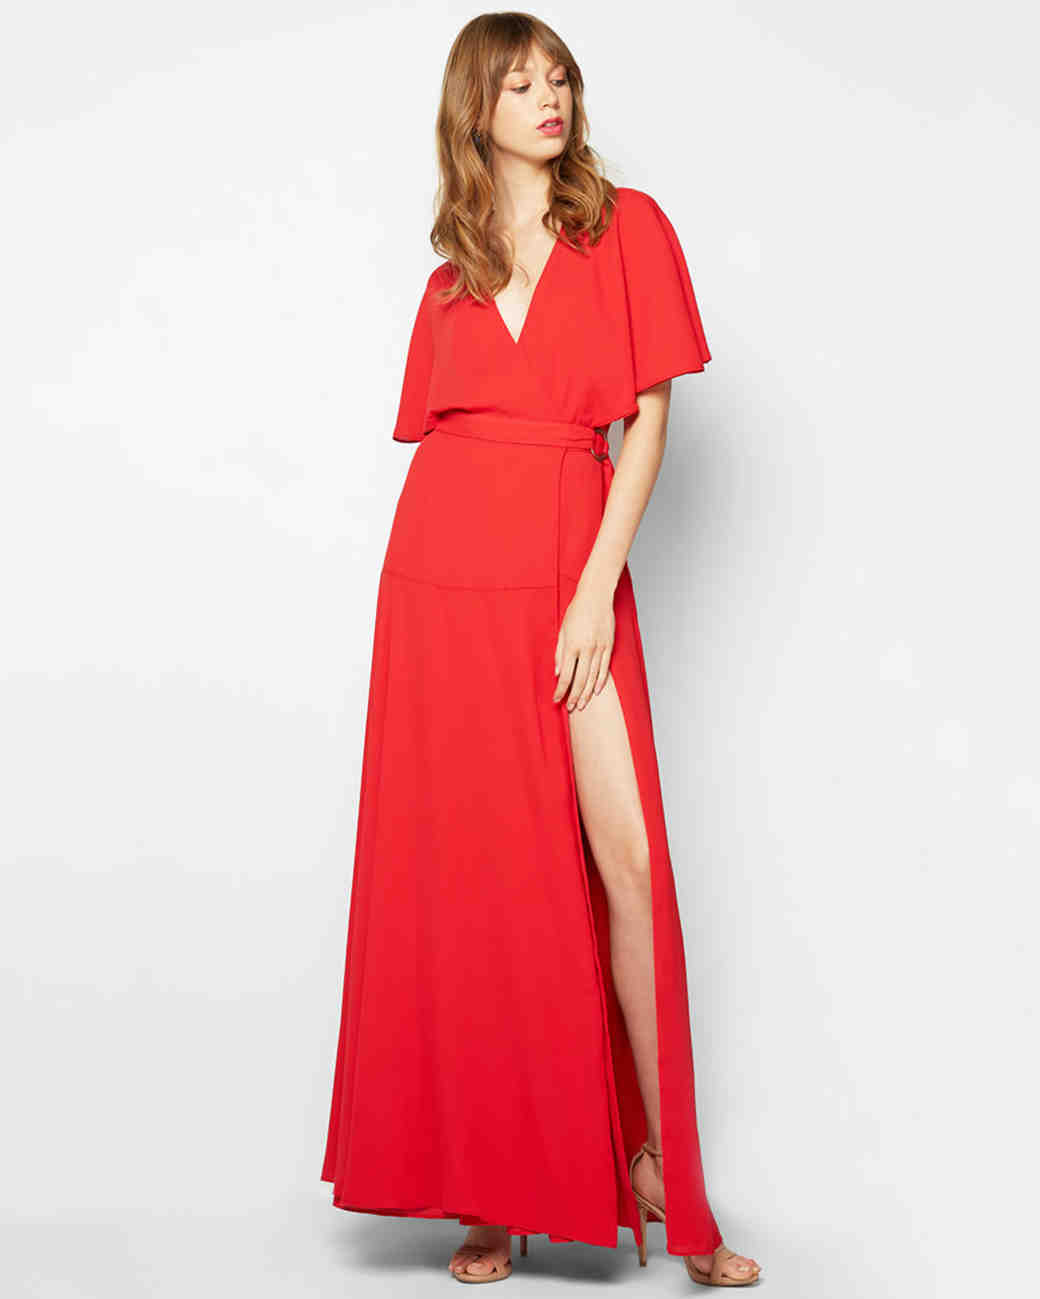 Red bridesmaid dresses martha stewart weddings ombrellifo Image collections